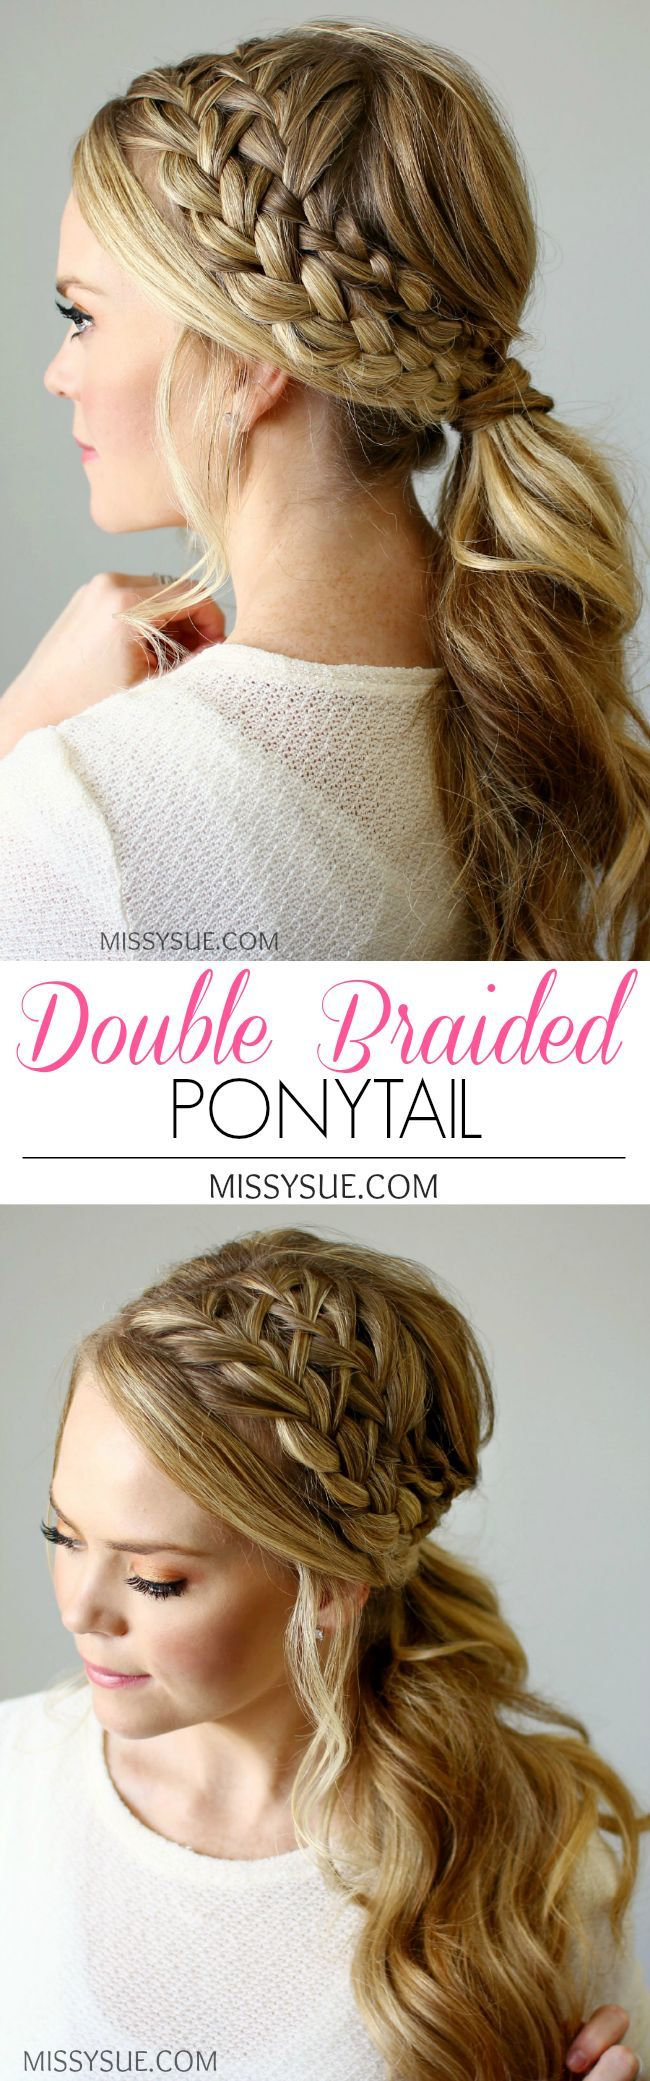 Pleasing 1000 Ideas About Braided Ponytail Hairstyles On Pinterest Short Hairstyles Gunalazisus